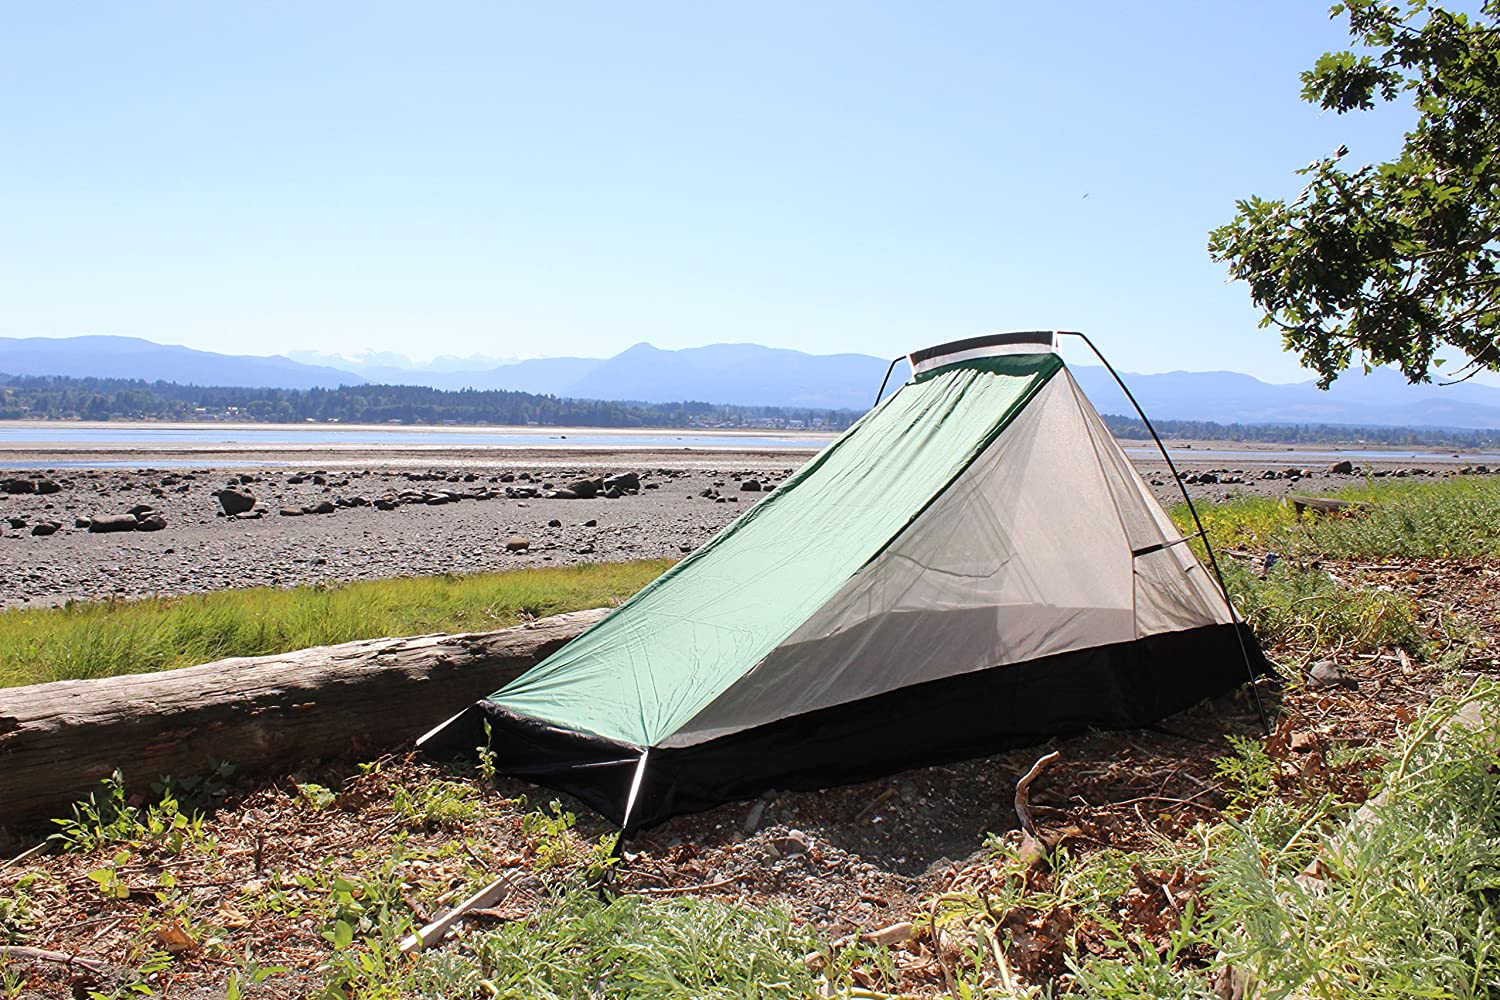 Amazon.com  Aqua Quest WEST COAST Bivvy Tent Mosquito Bug Net Mesh for Backpacking Trekking Hunting Climbing  Backpacking Tents  Sports u0026 Outdoors : bivy or tent - memphite.com